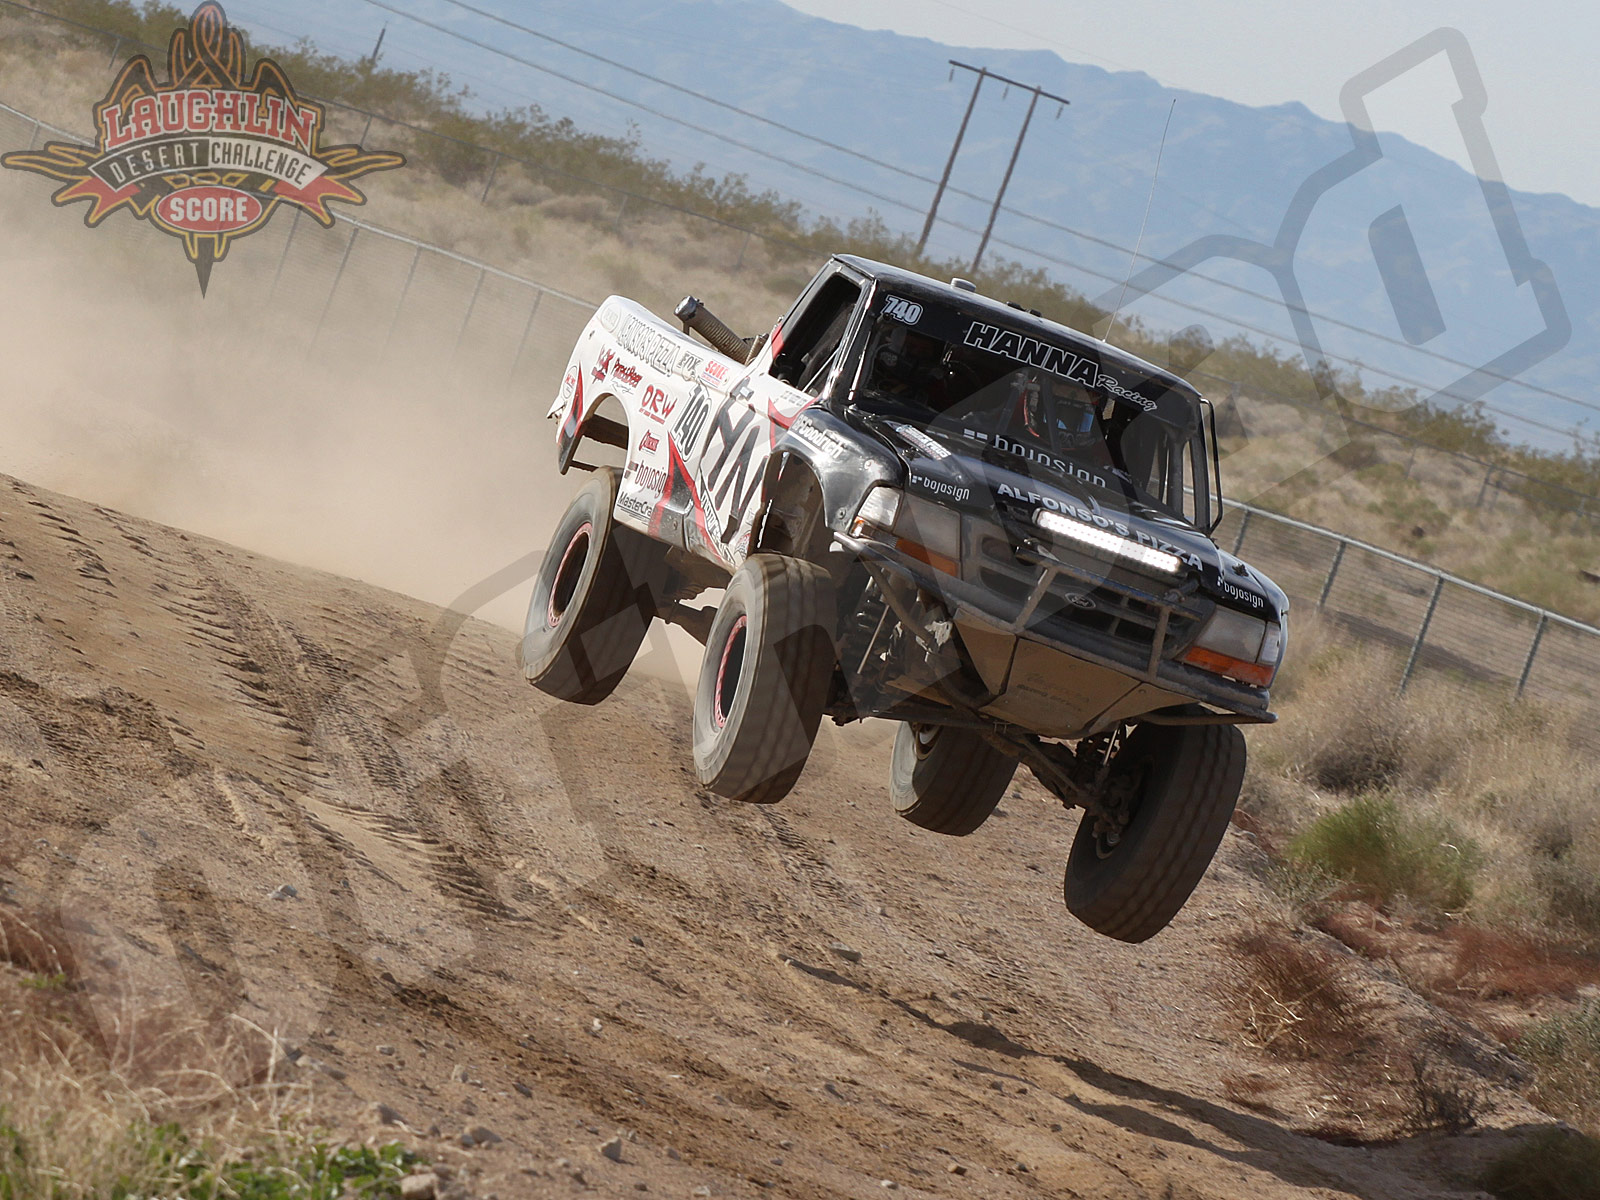 012011or 6569+2011 score laughlin desert challenge+truck classes